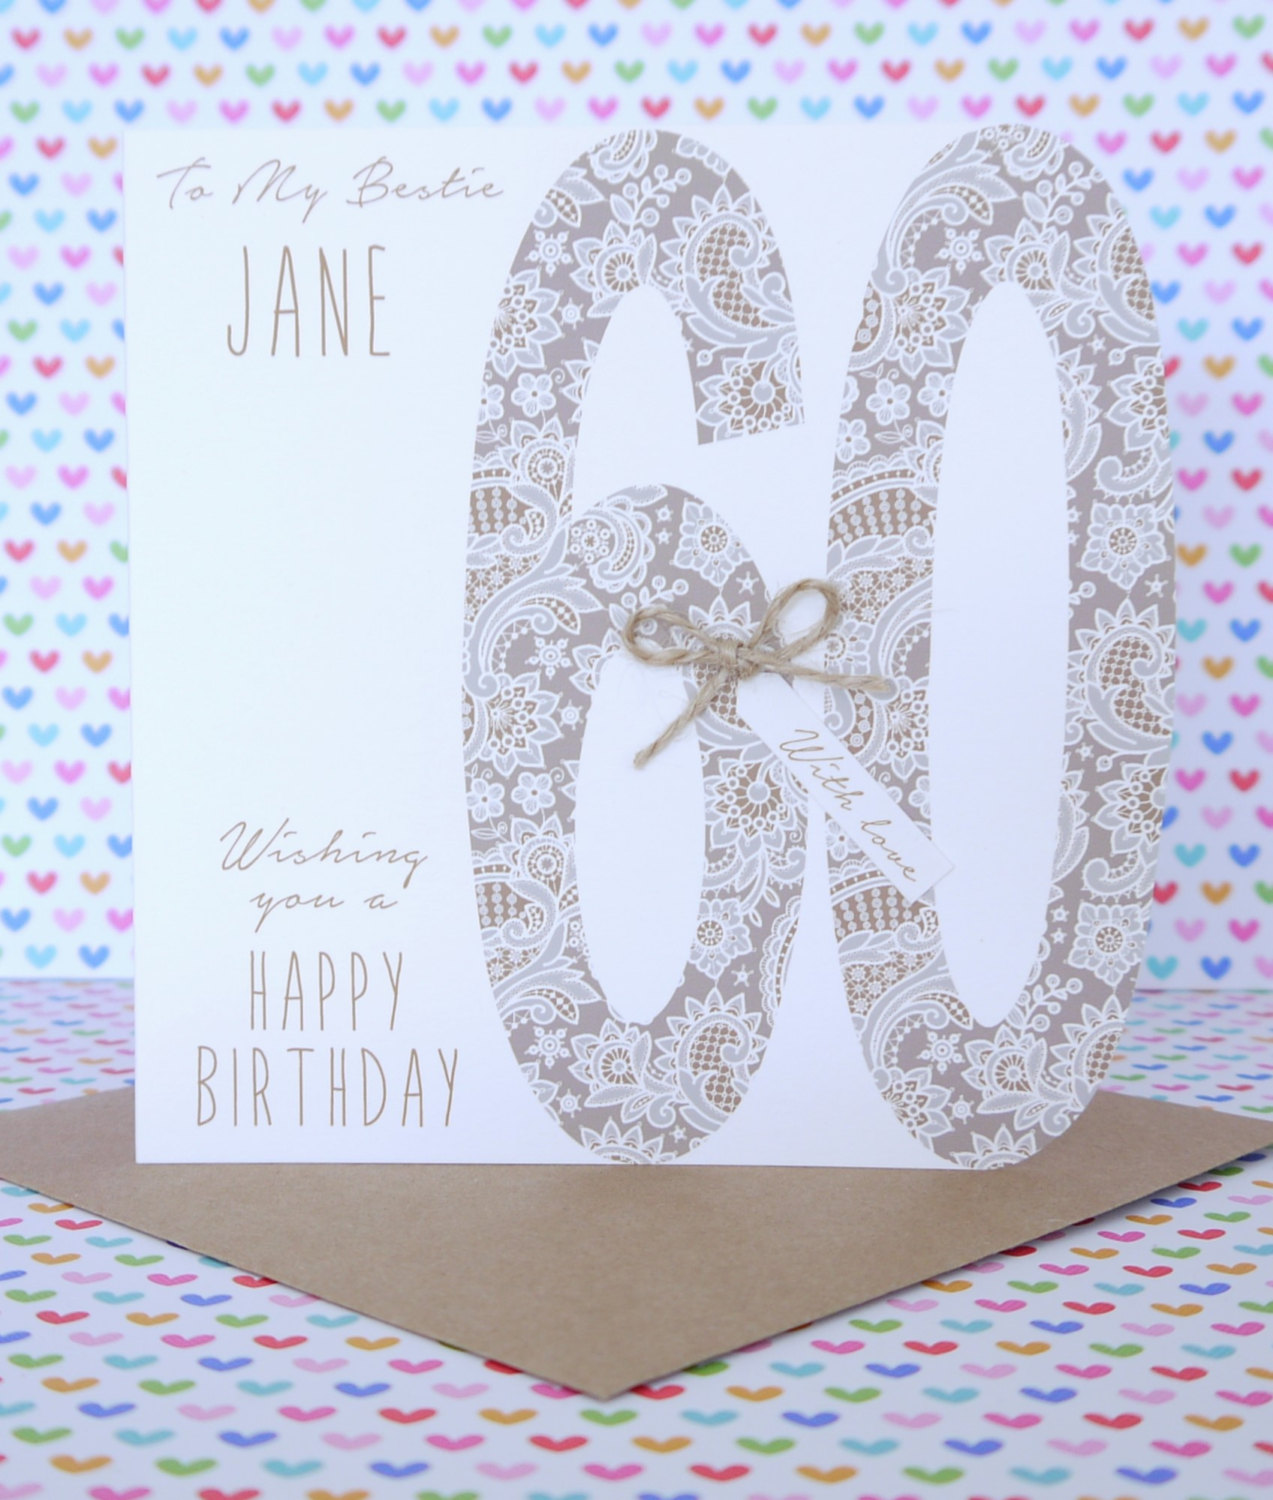 Beautiful personalised handmade birthday card 18th21st30th40th beautiful personalised handmade birthday card 40th50th60th bookmarktalkfo Image collections